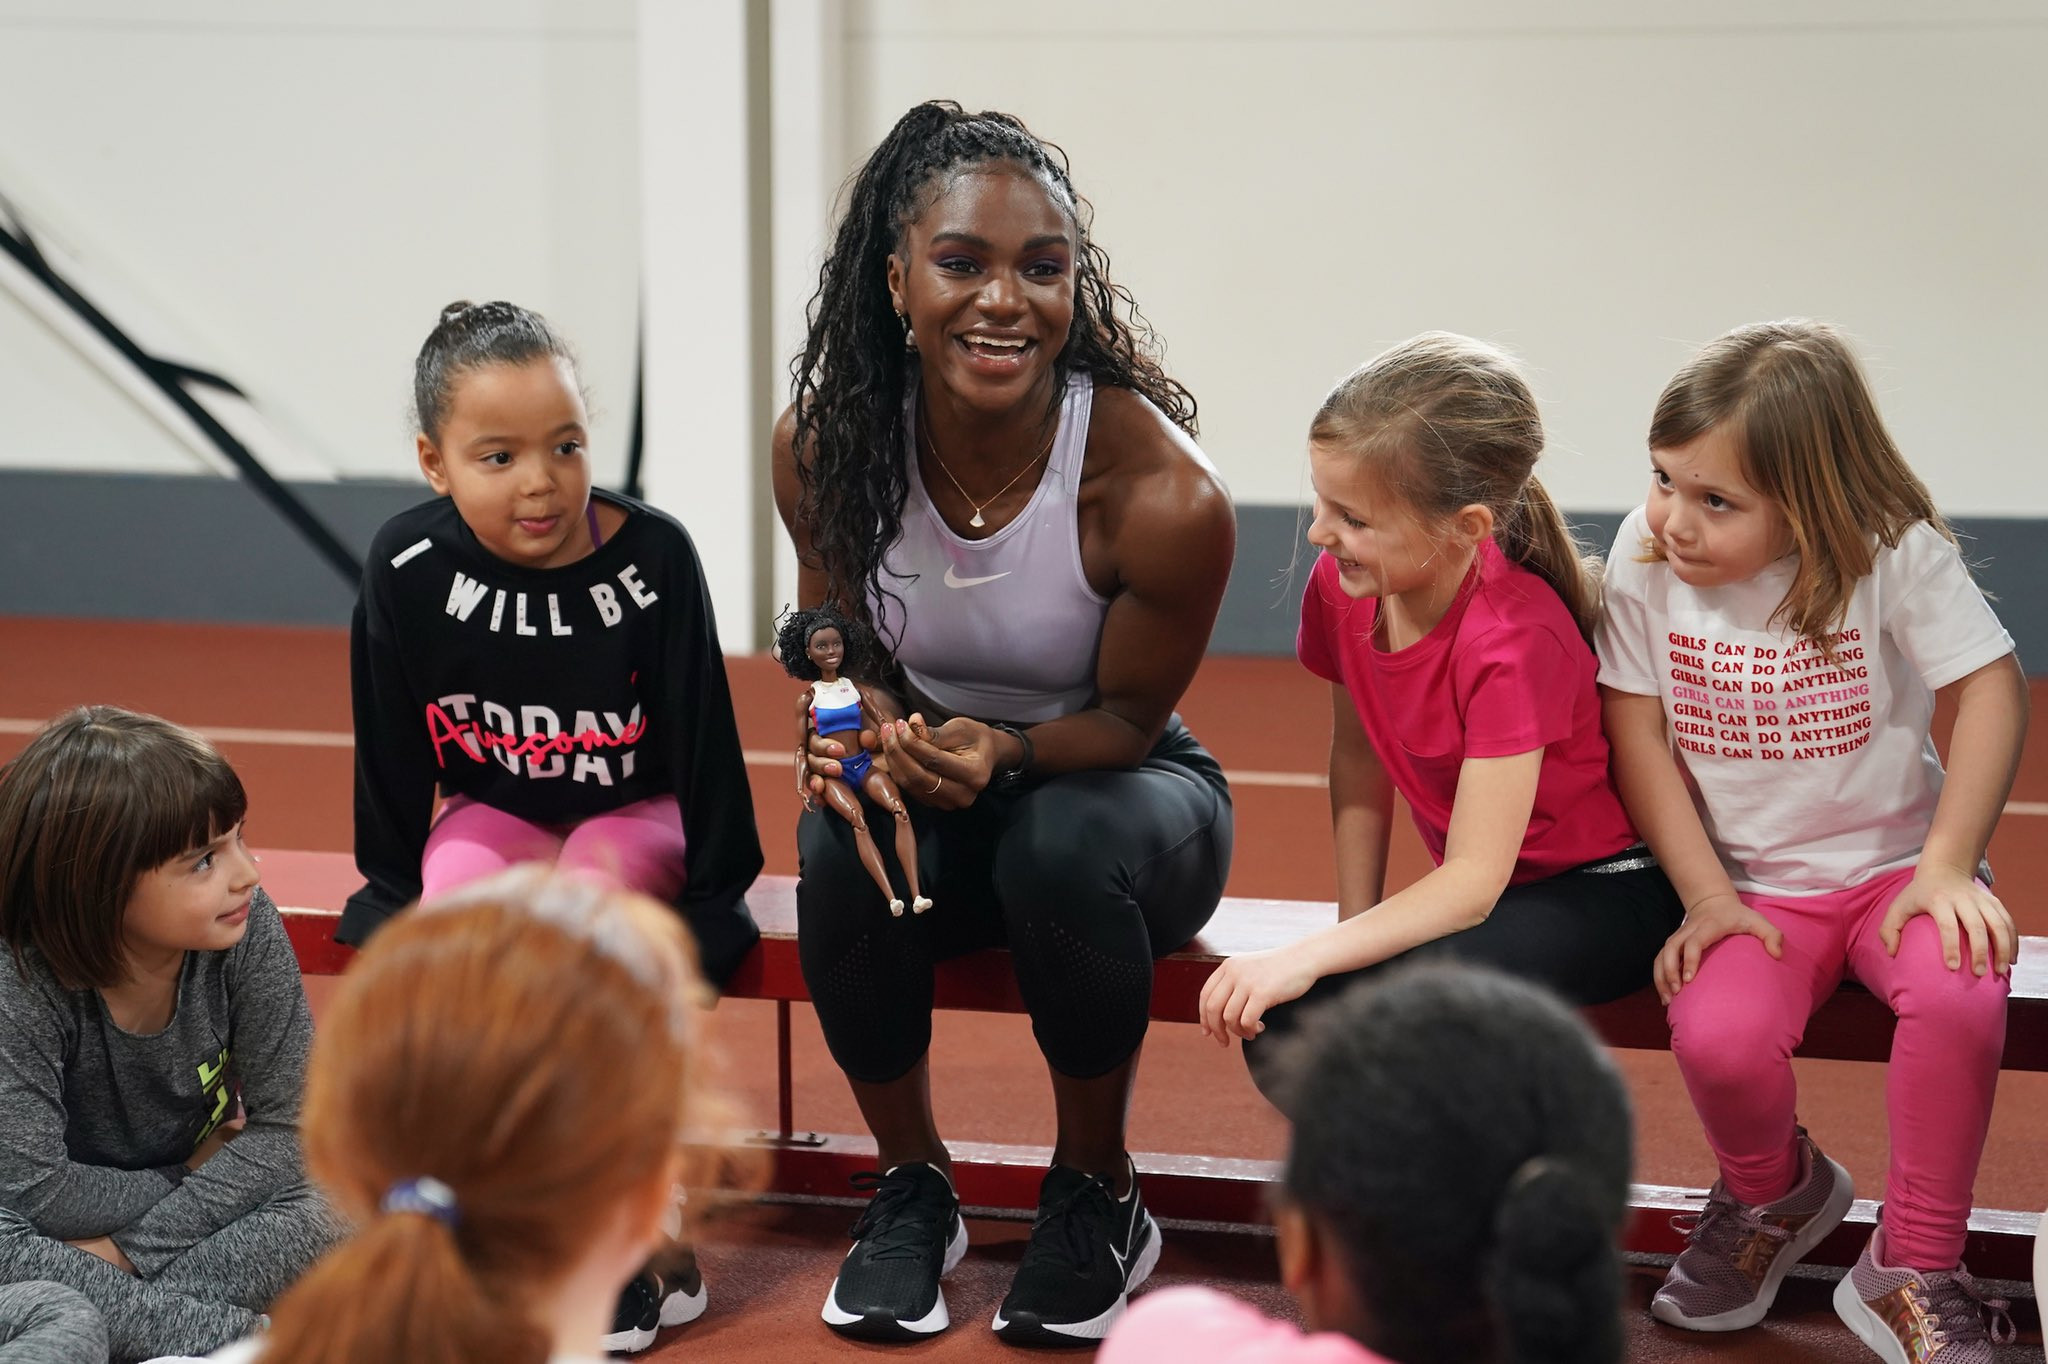 Toy company Mattel made a Barbie doll inspired by sprinter Dina-Asher Smith ©Getty Images